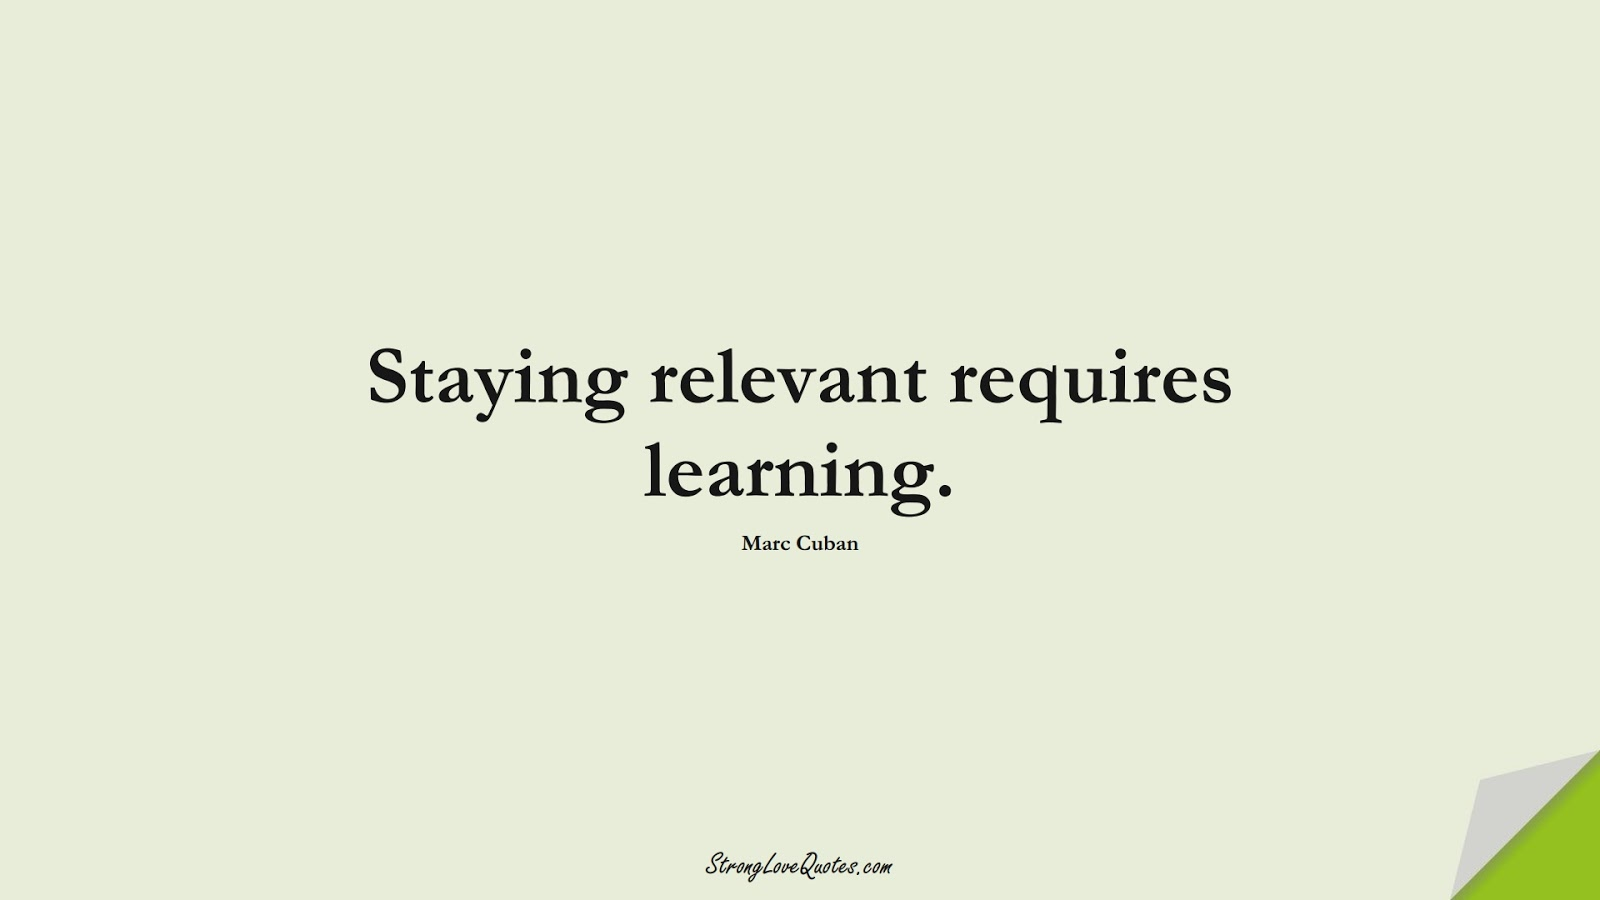 33 Quotes About Learning, Work, Leadership, Business - Strong Love ...